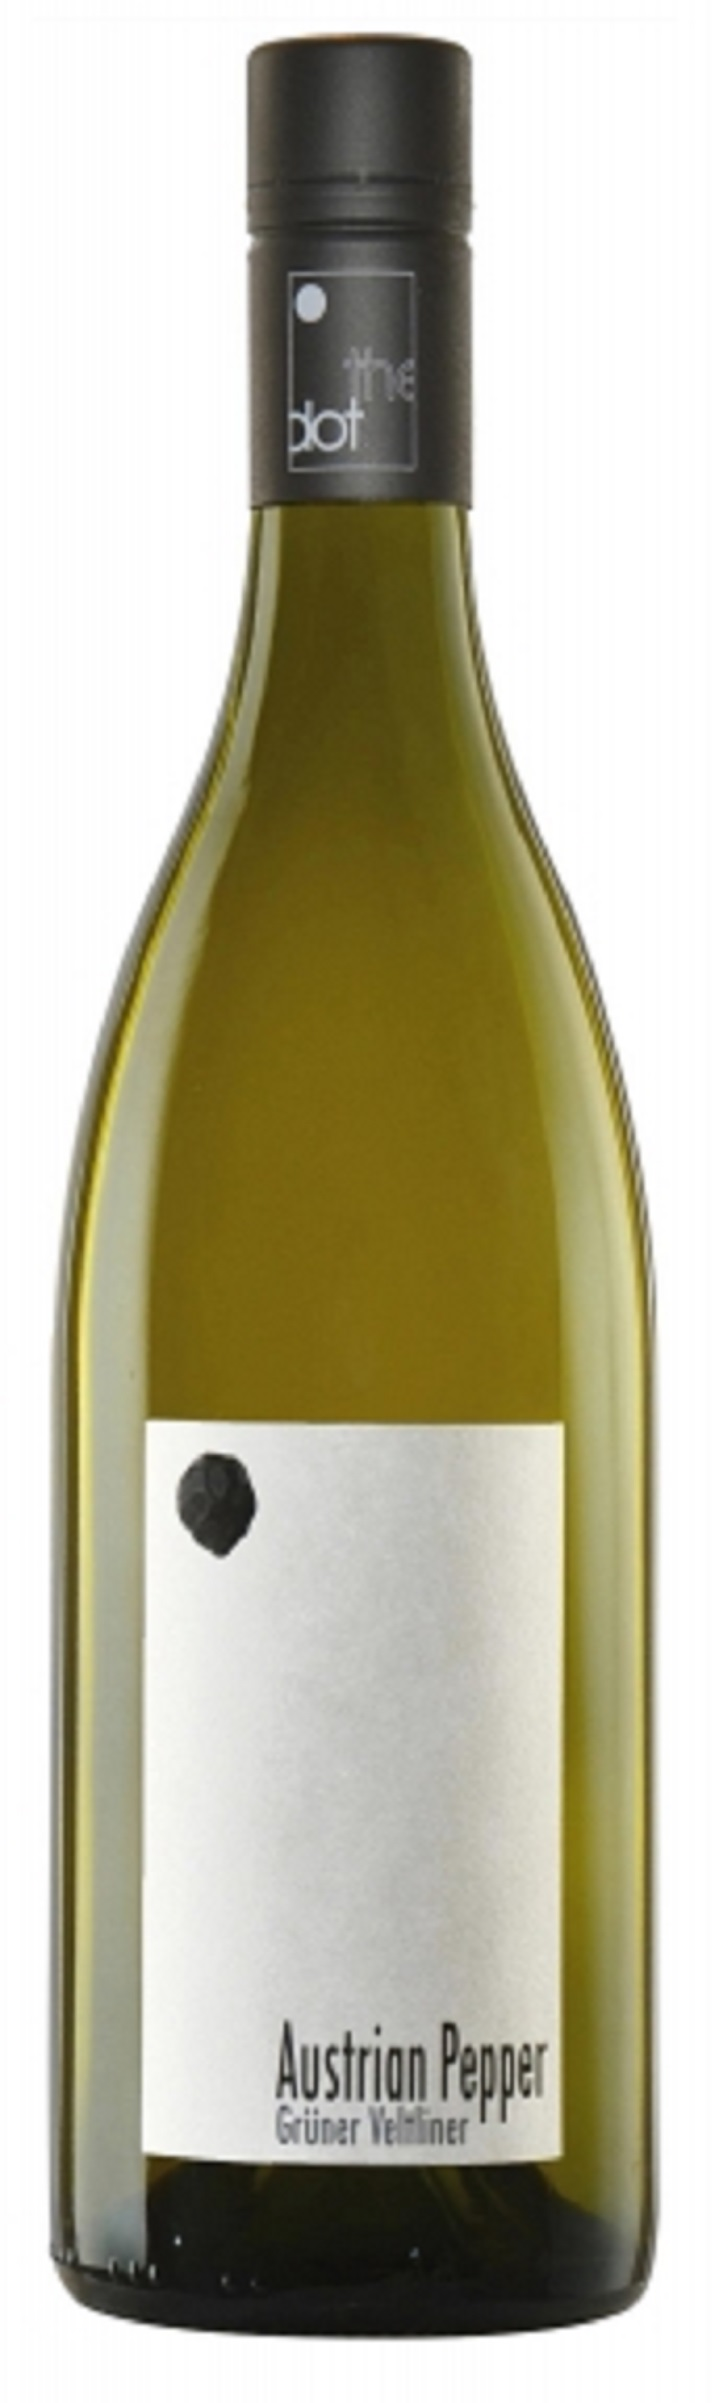 Weingut Pfaffl-The-Dot-Austrian-Pepper-Gruner-Veltliner-2016